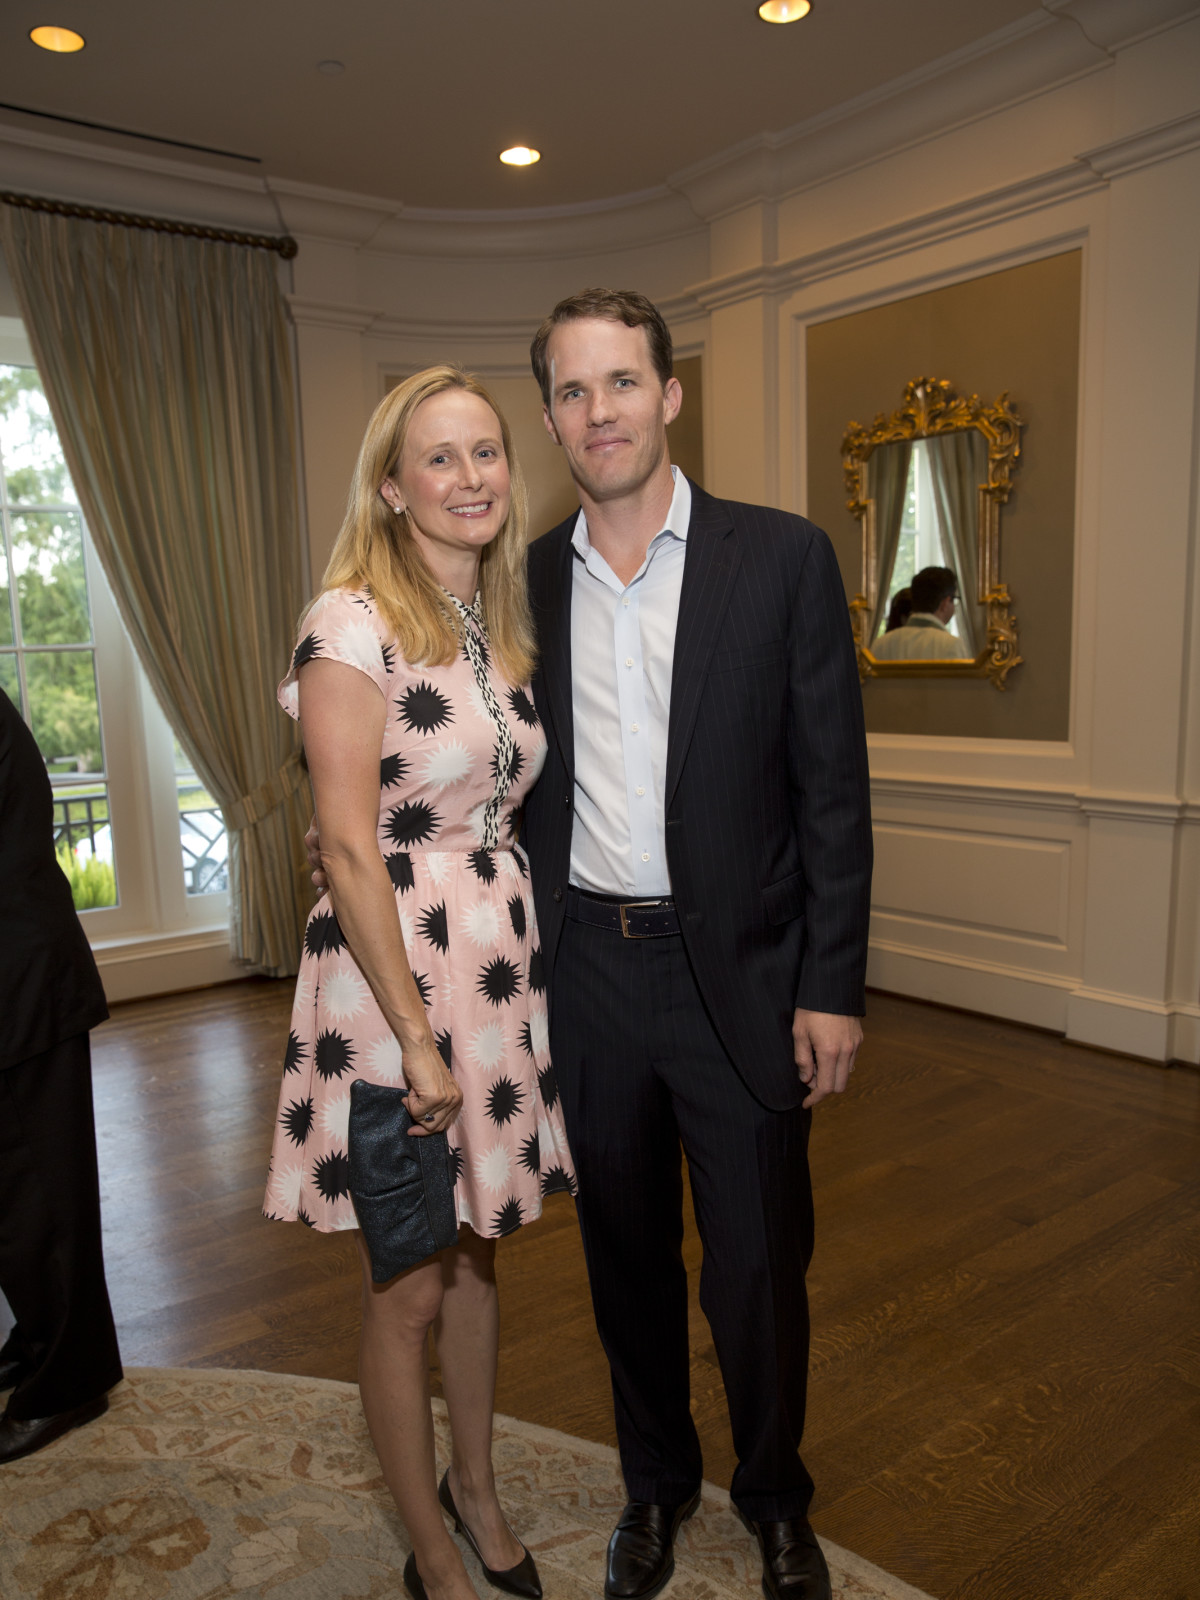 Paul Atwood, Jenna Atwood at Chinquapin Flashback 75 gala